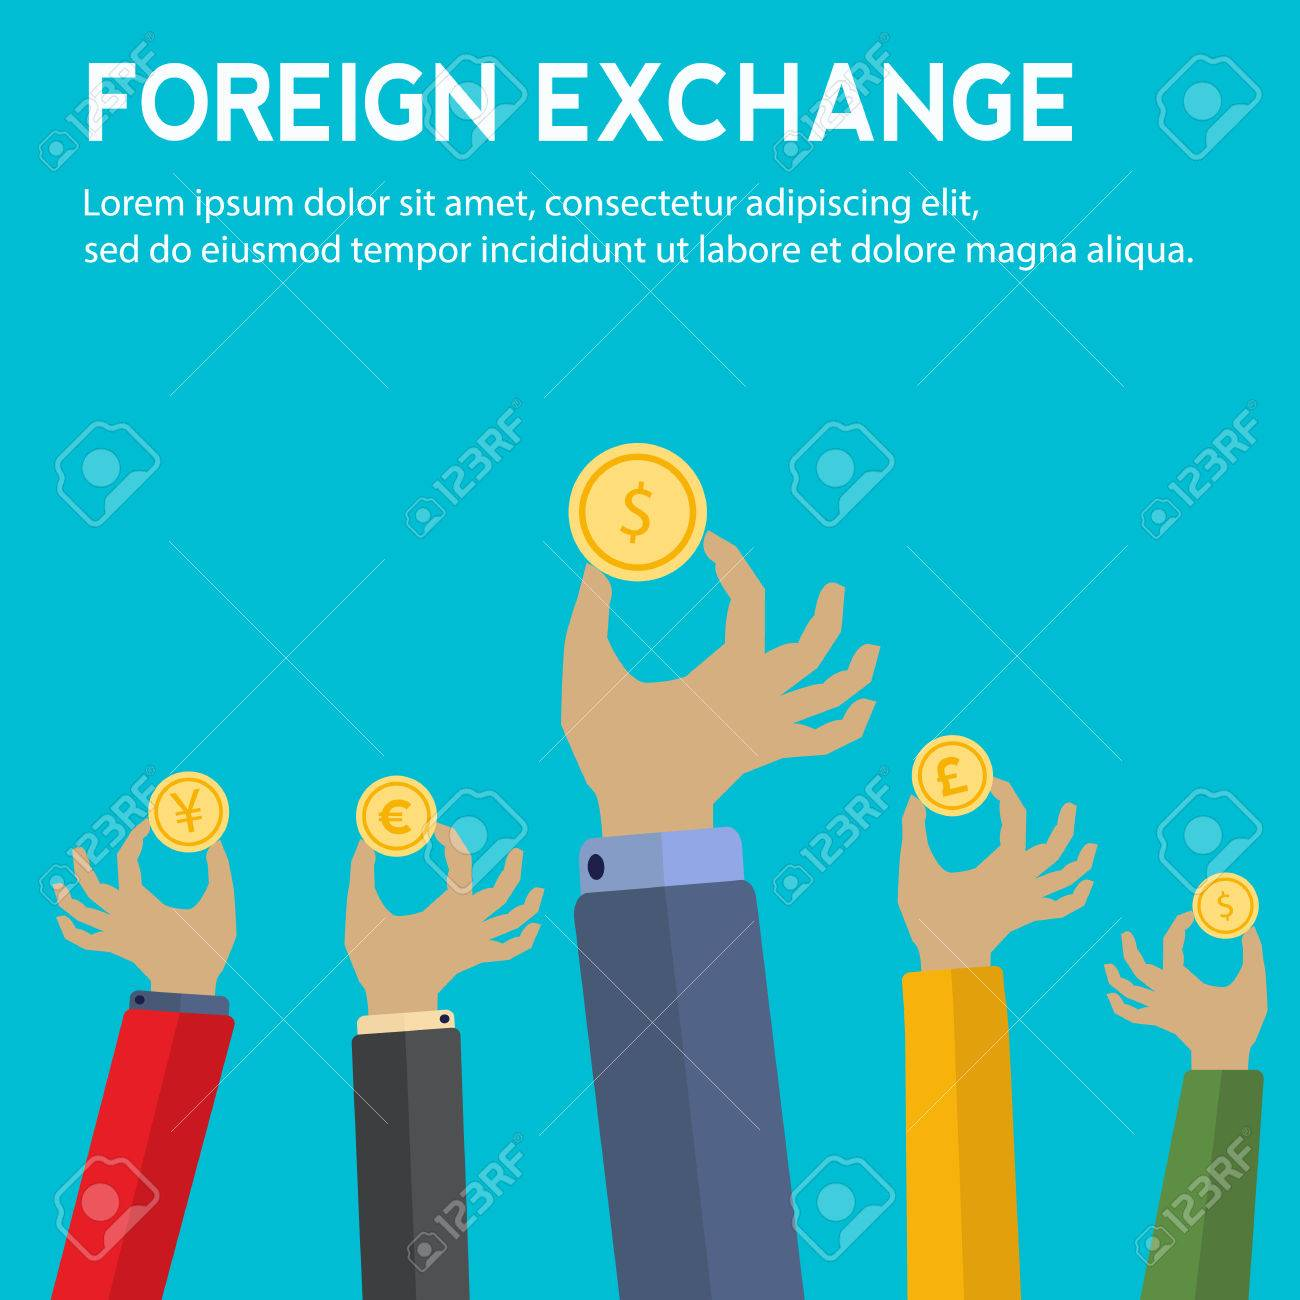 Foreign Exchange Concept With Hands Holding Coins With Symbols